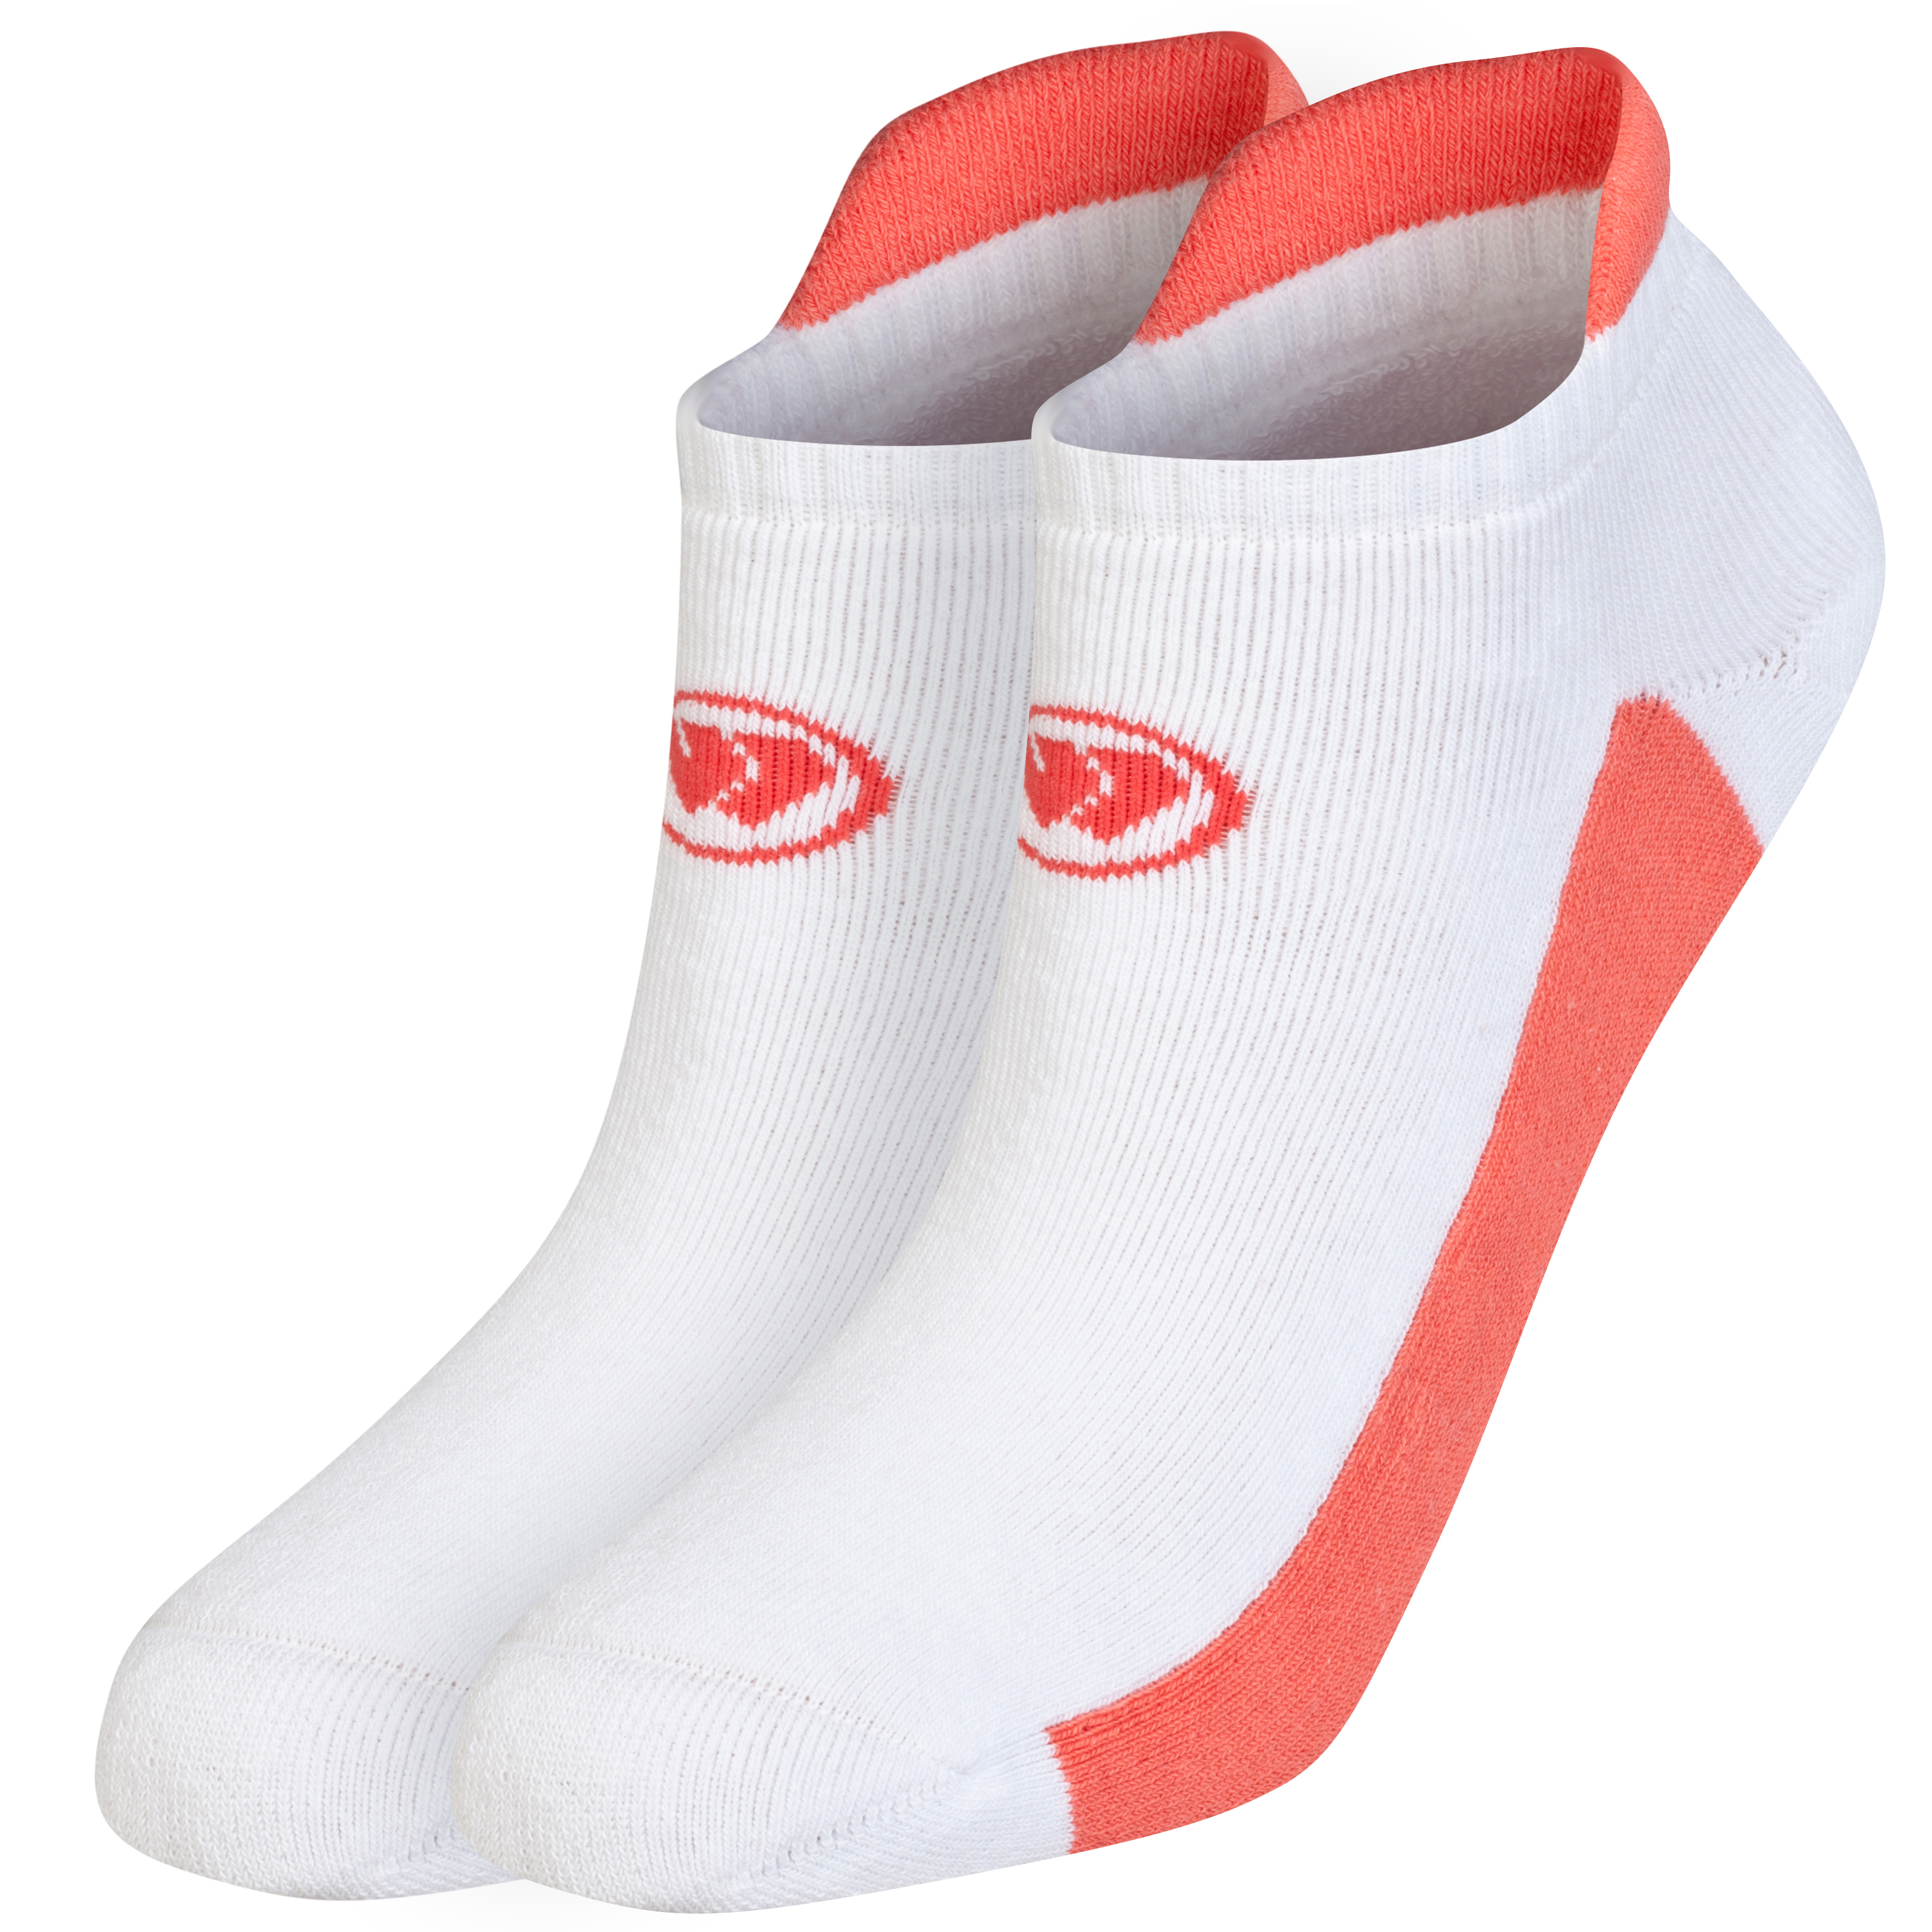 Wimbledon Trainer Socks - Ladies White